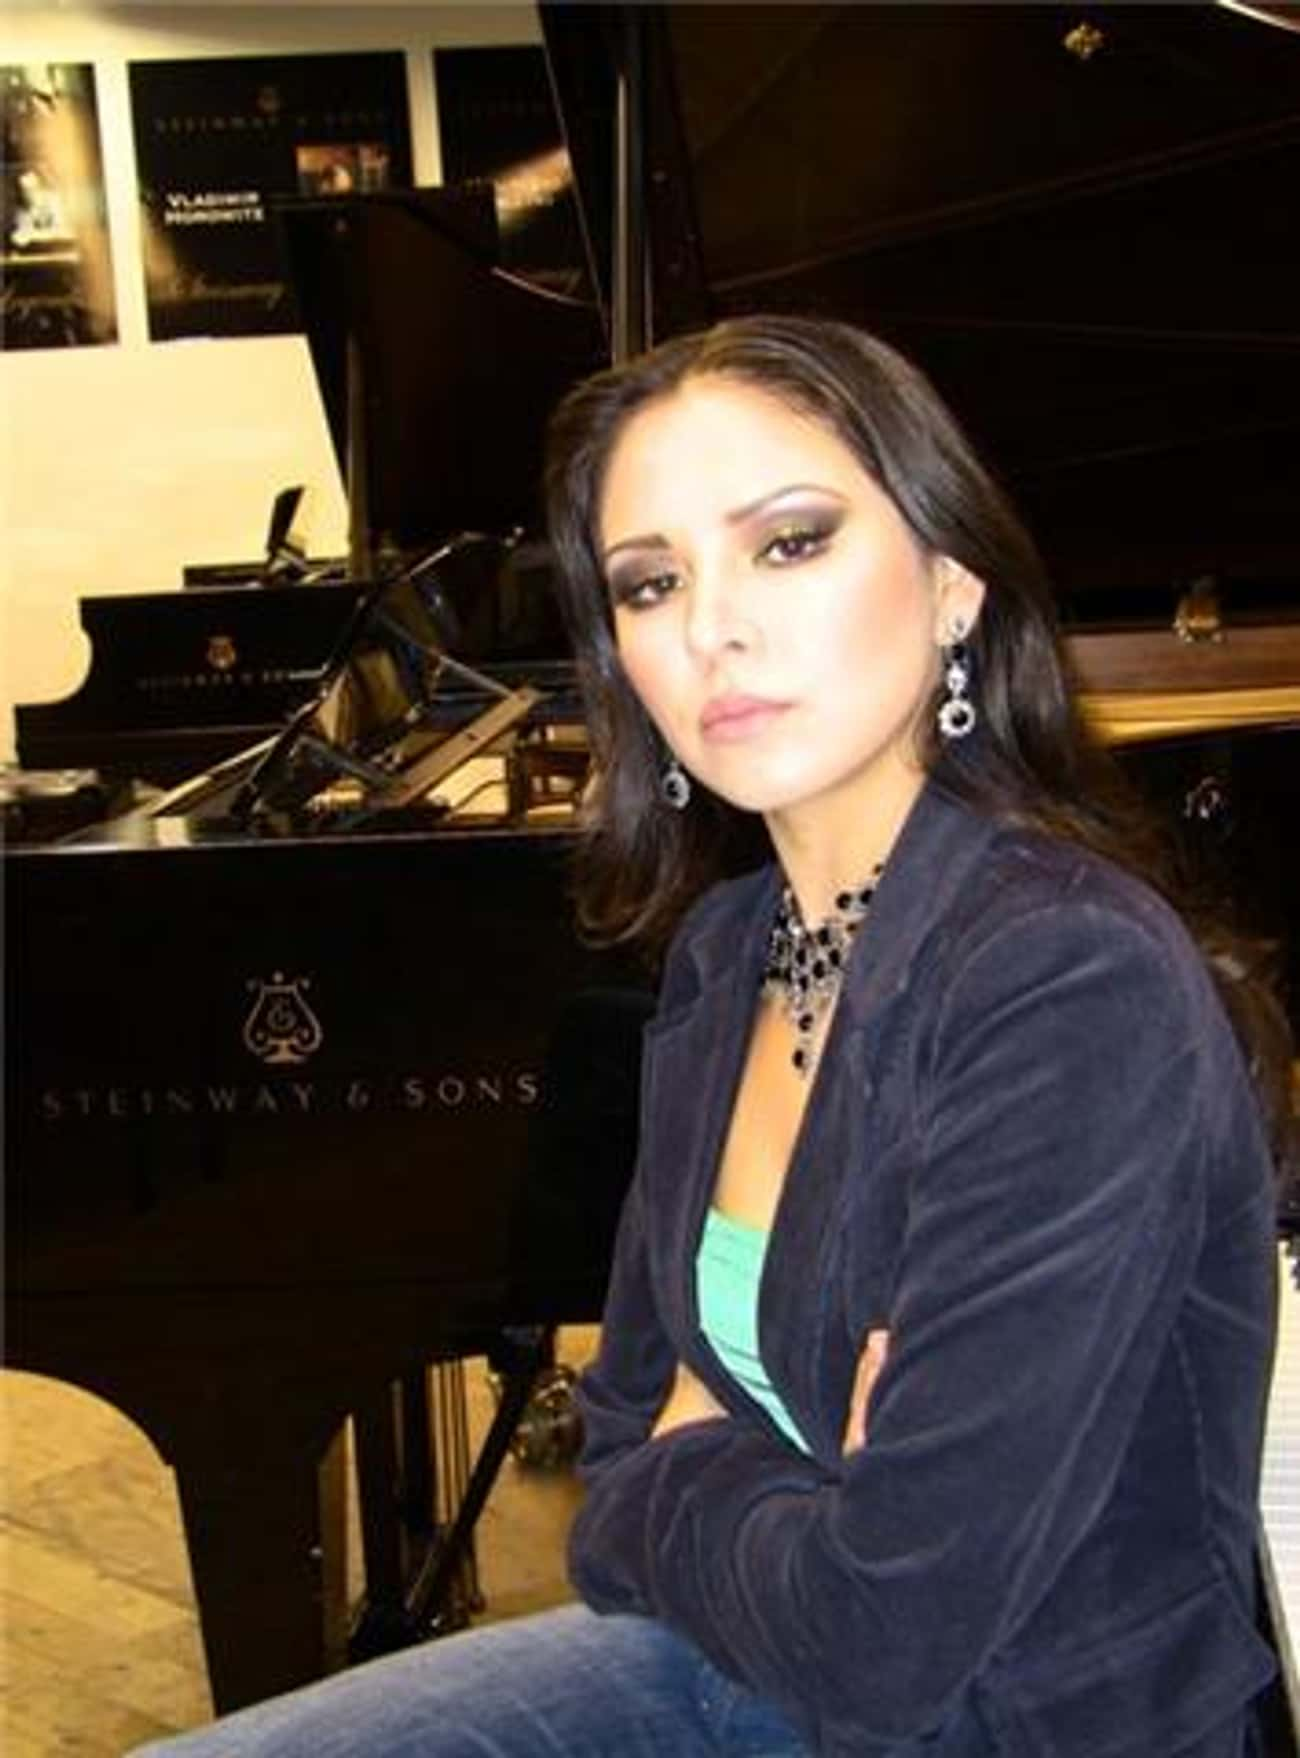 Lola Astonova is listed (or ranked) 1 on the list The Most Gorgeous Female Classical Musicians